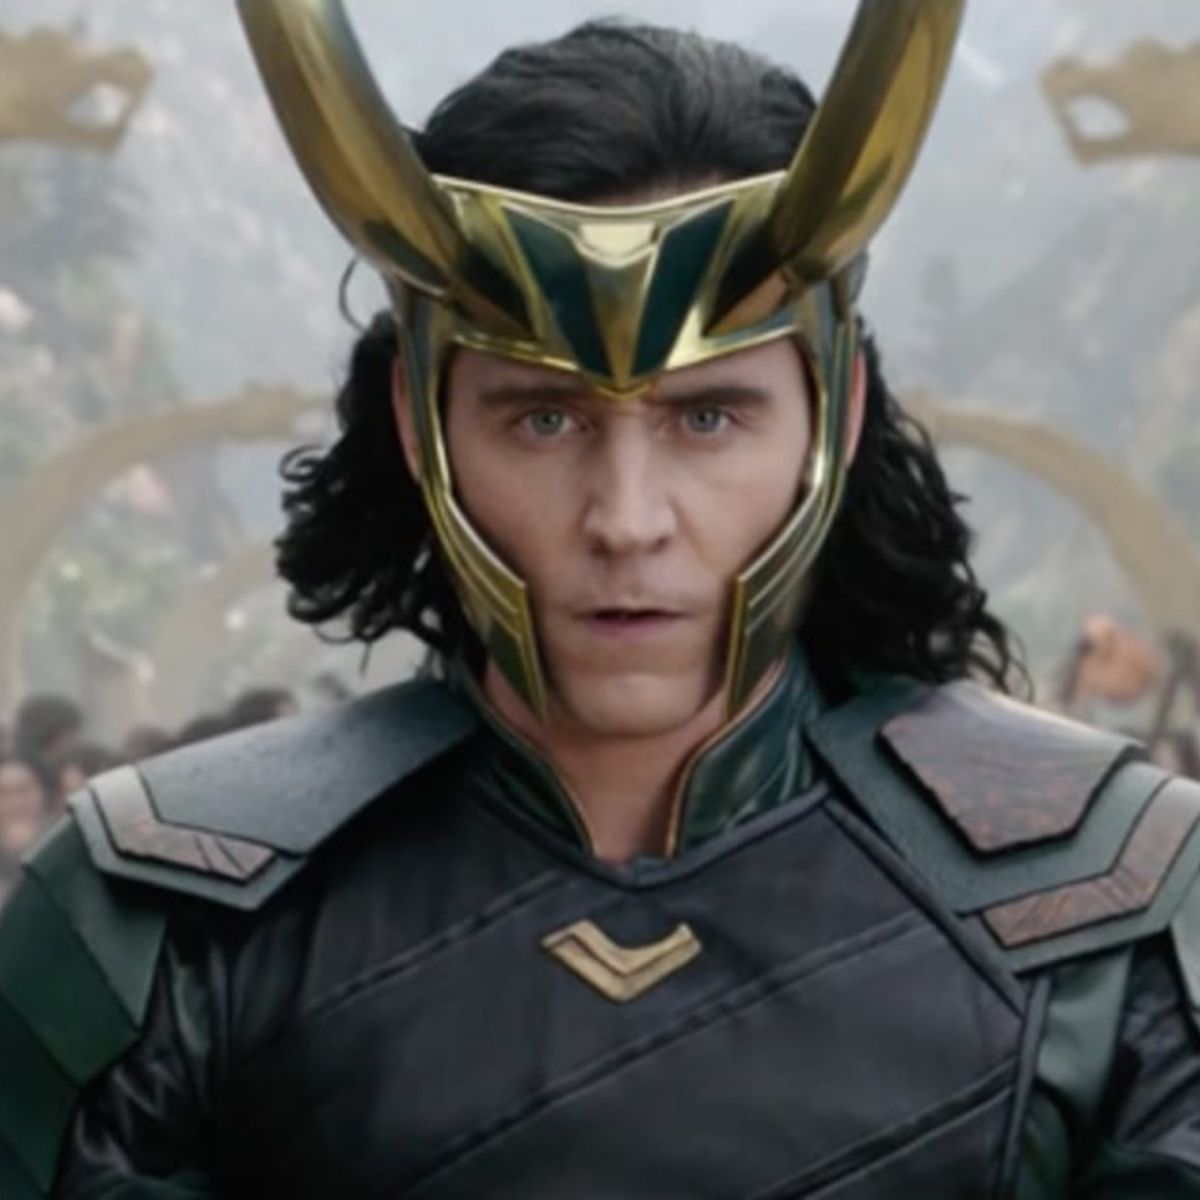 Disney Streaming Service to Feature Loki and Scarlet Witch TV Shows